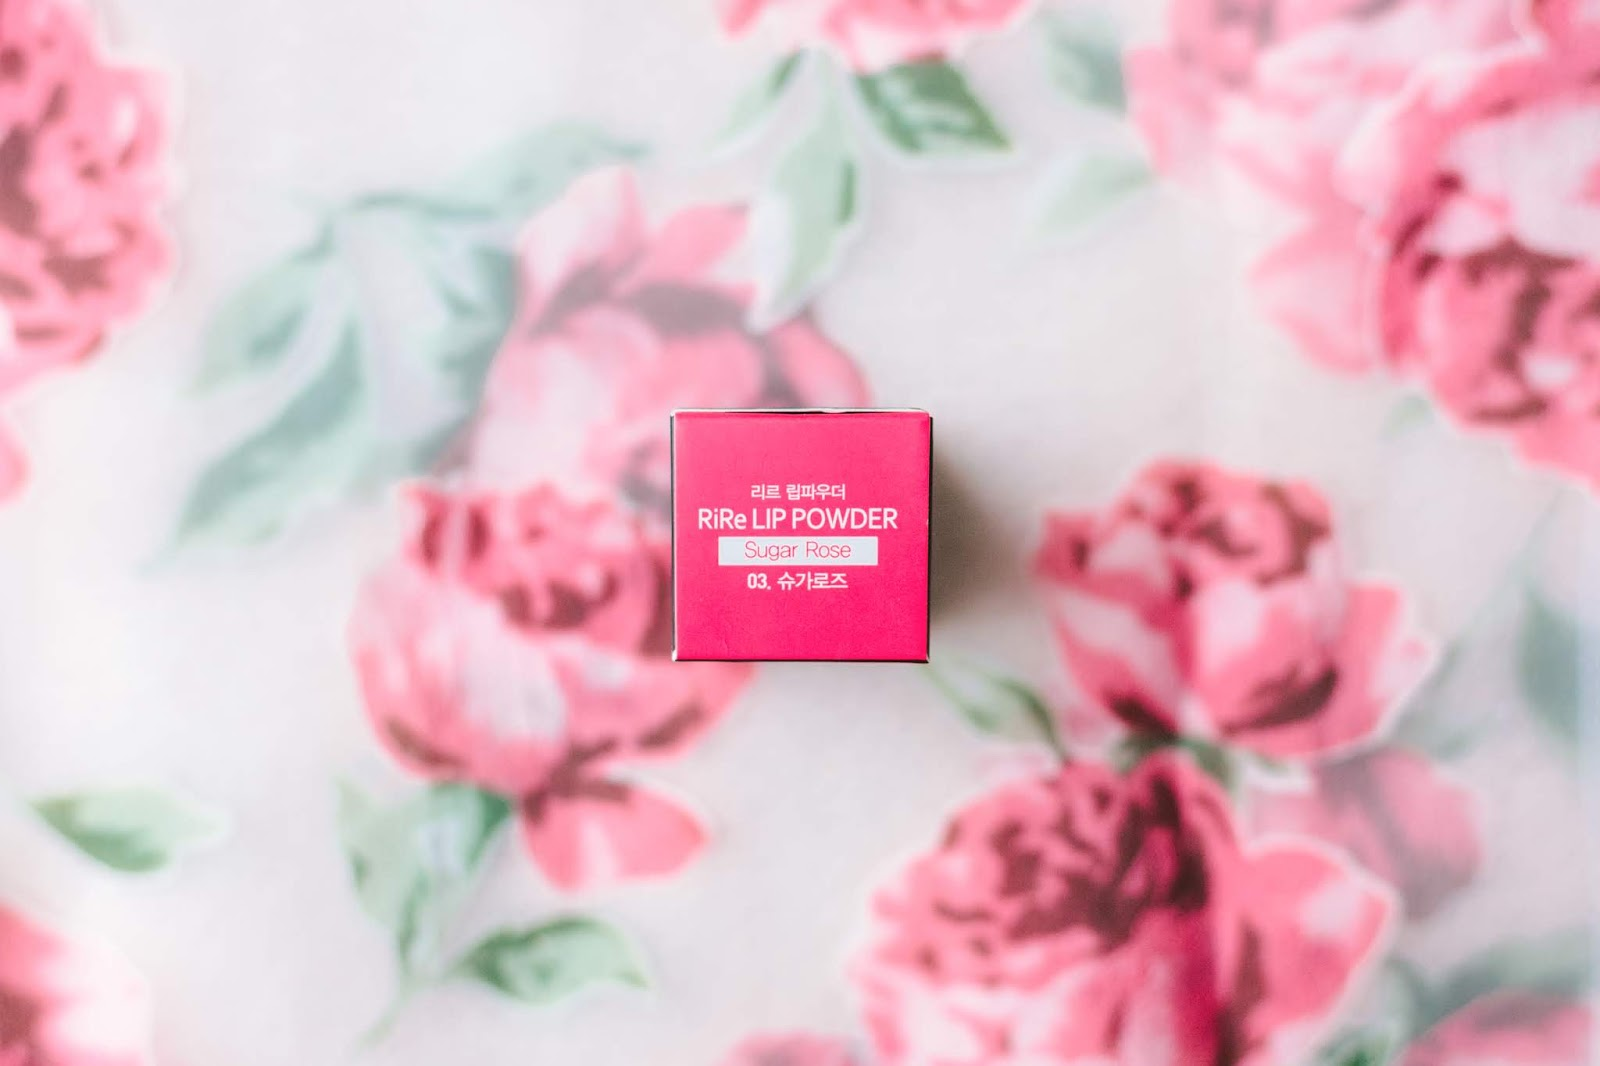 RiRe Lip Powder Tint in 03 Sugar Rose | chainyan.co